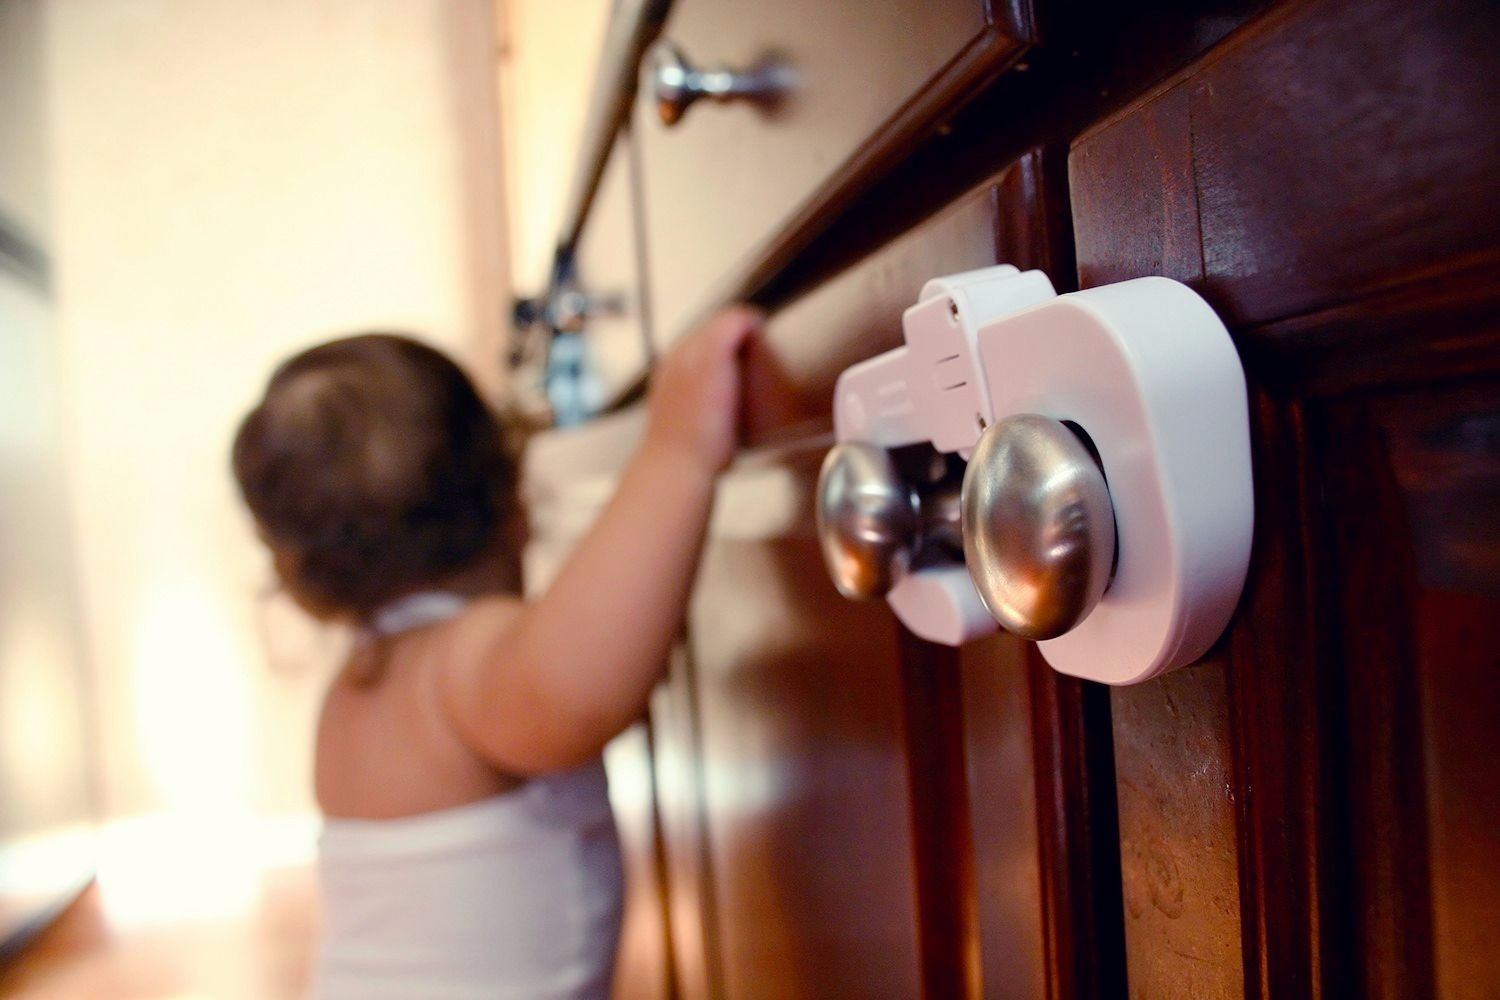 Childproofing for Protection